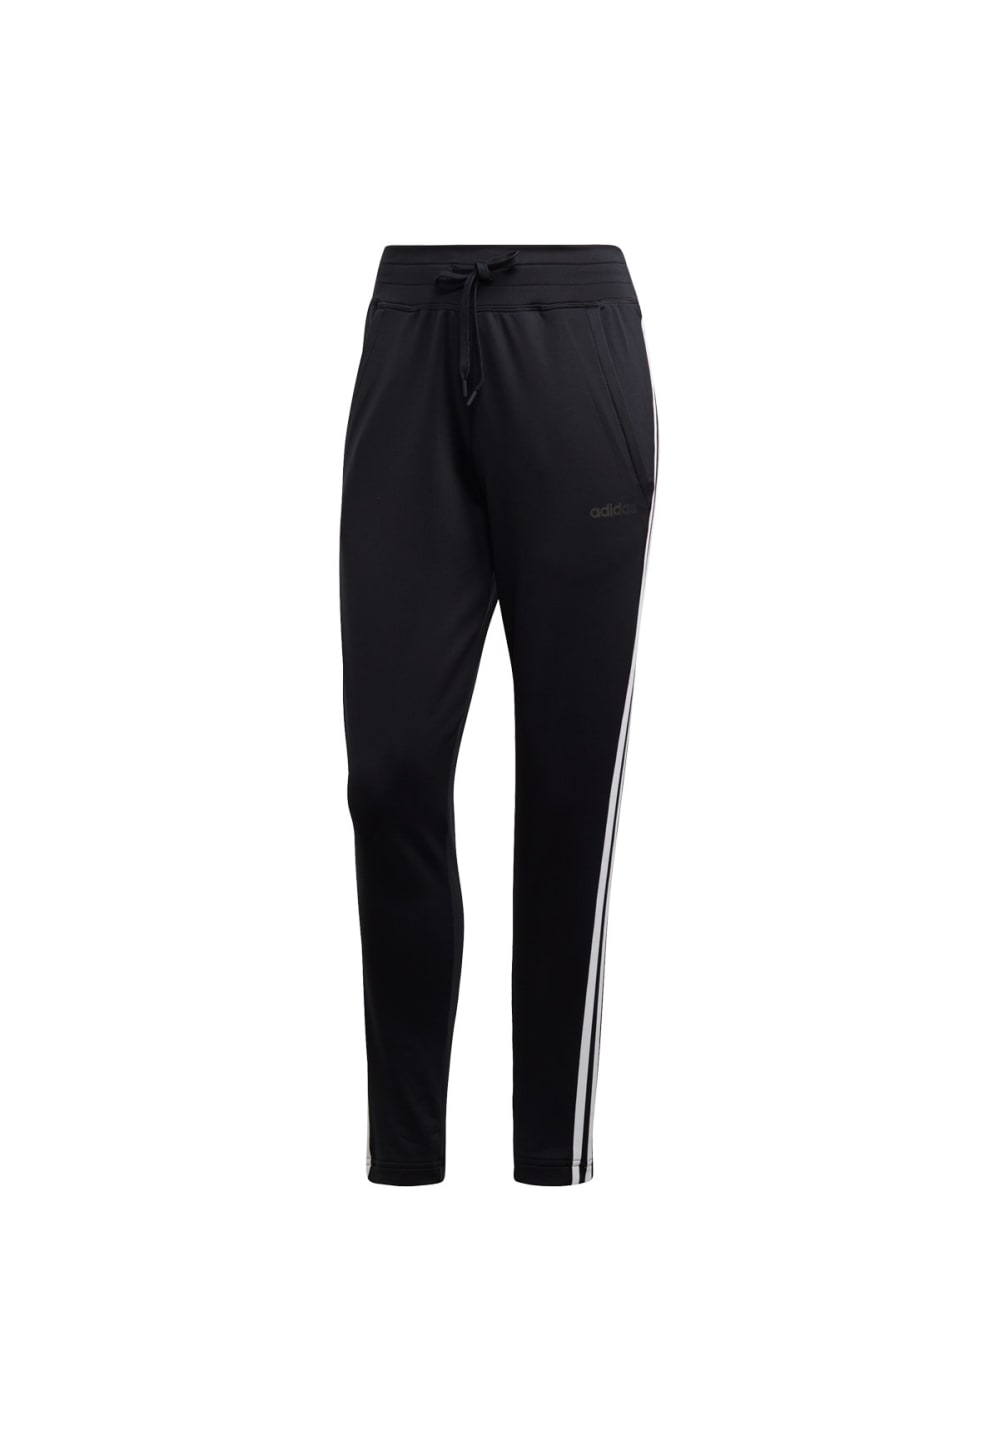 d66328bf5d116 adidas Design 2 Move 3-Stripes Pants - Pantalons fitness pour Femme - Noir